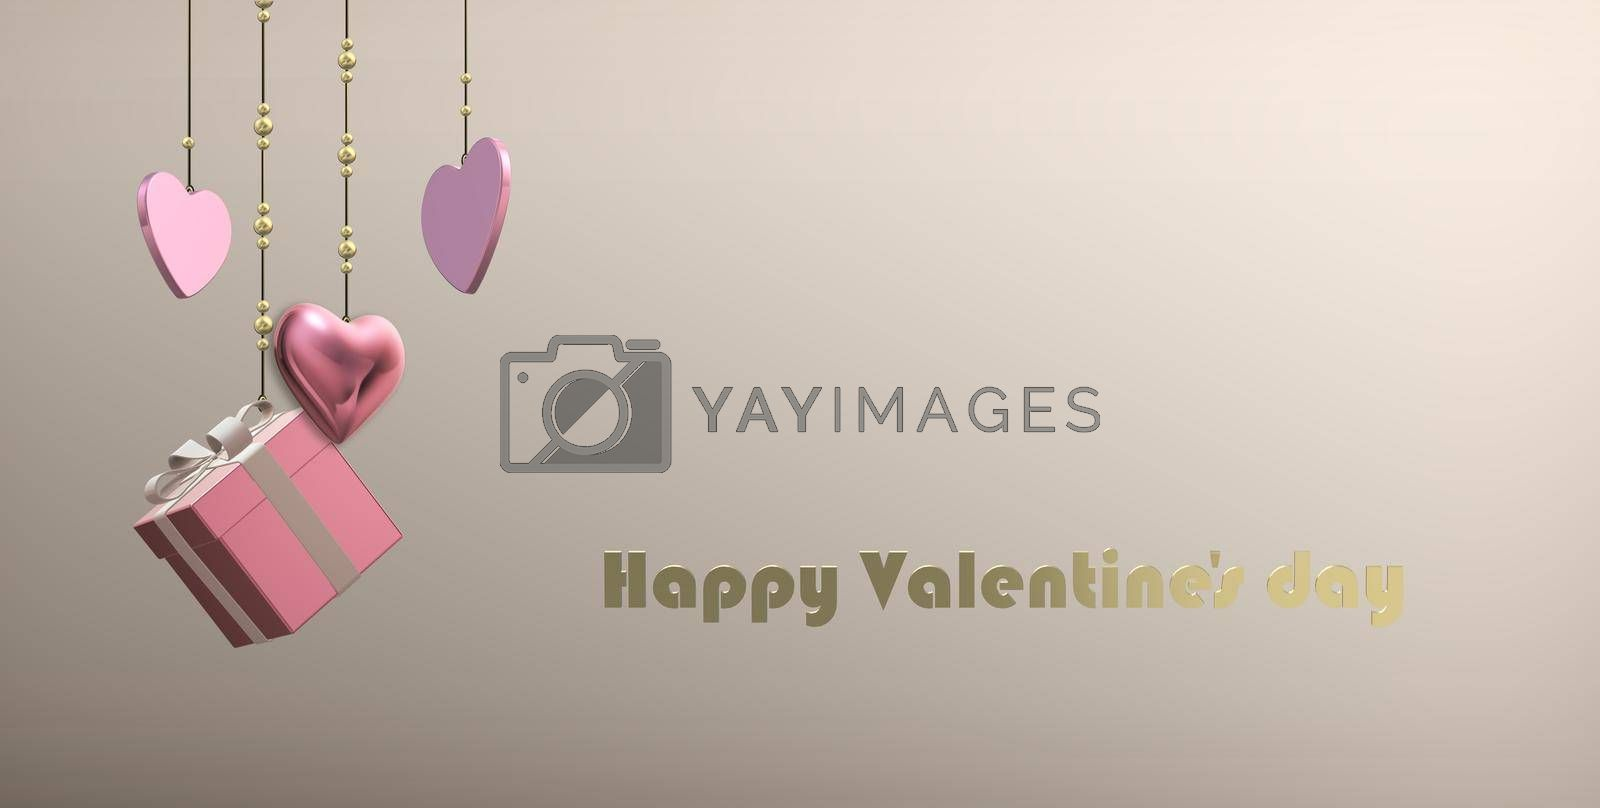 Luxury Valentines card, love design, hanging pink gold hearts, gift box on pastel background. Gold text Happy Valentine's day. Elegant design, template for love card. 3D illustration